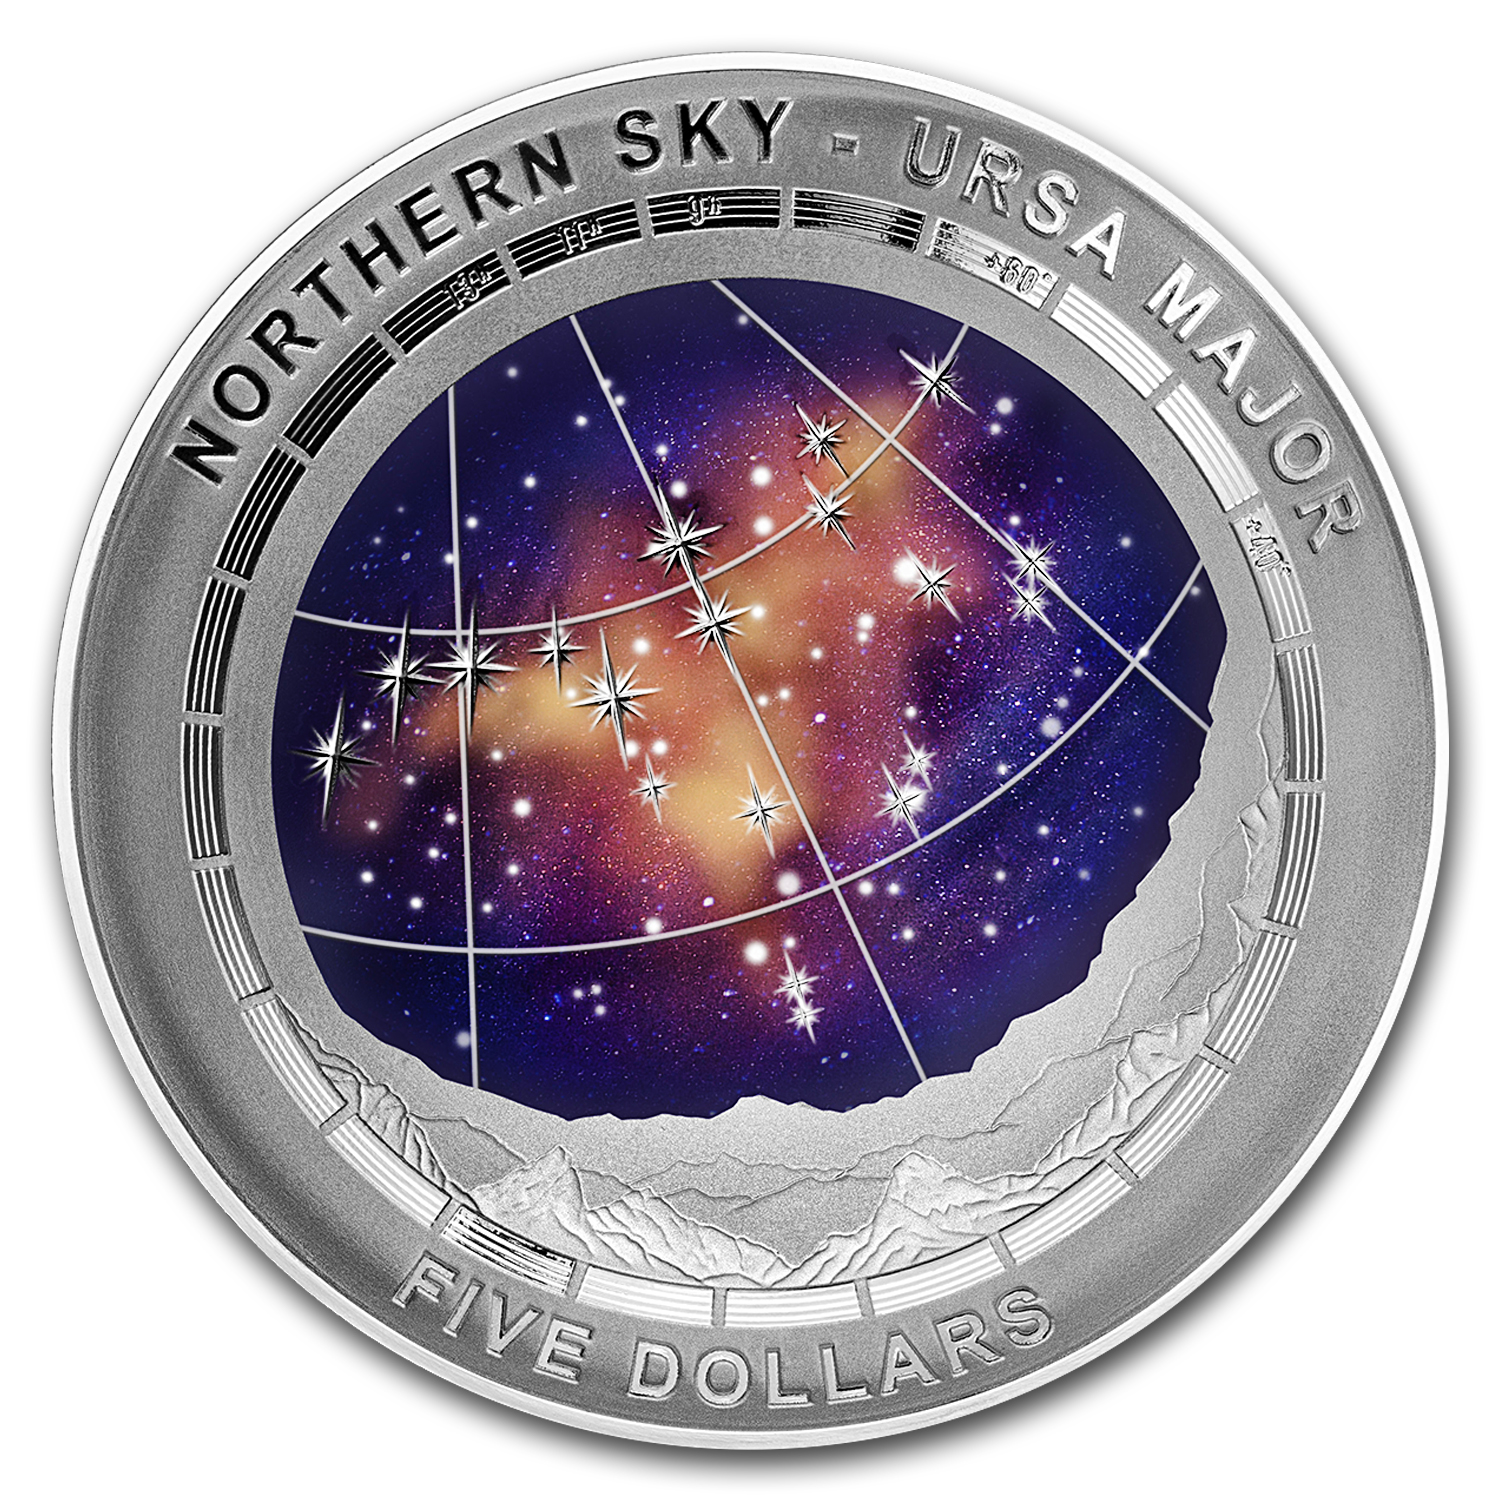 2016 Australia Silver $5 Color Domed Northern Sky Ursa Major